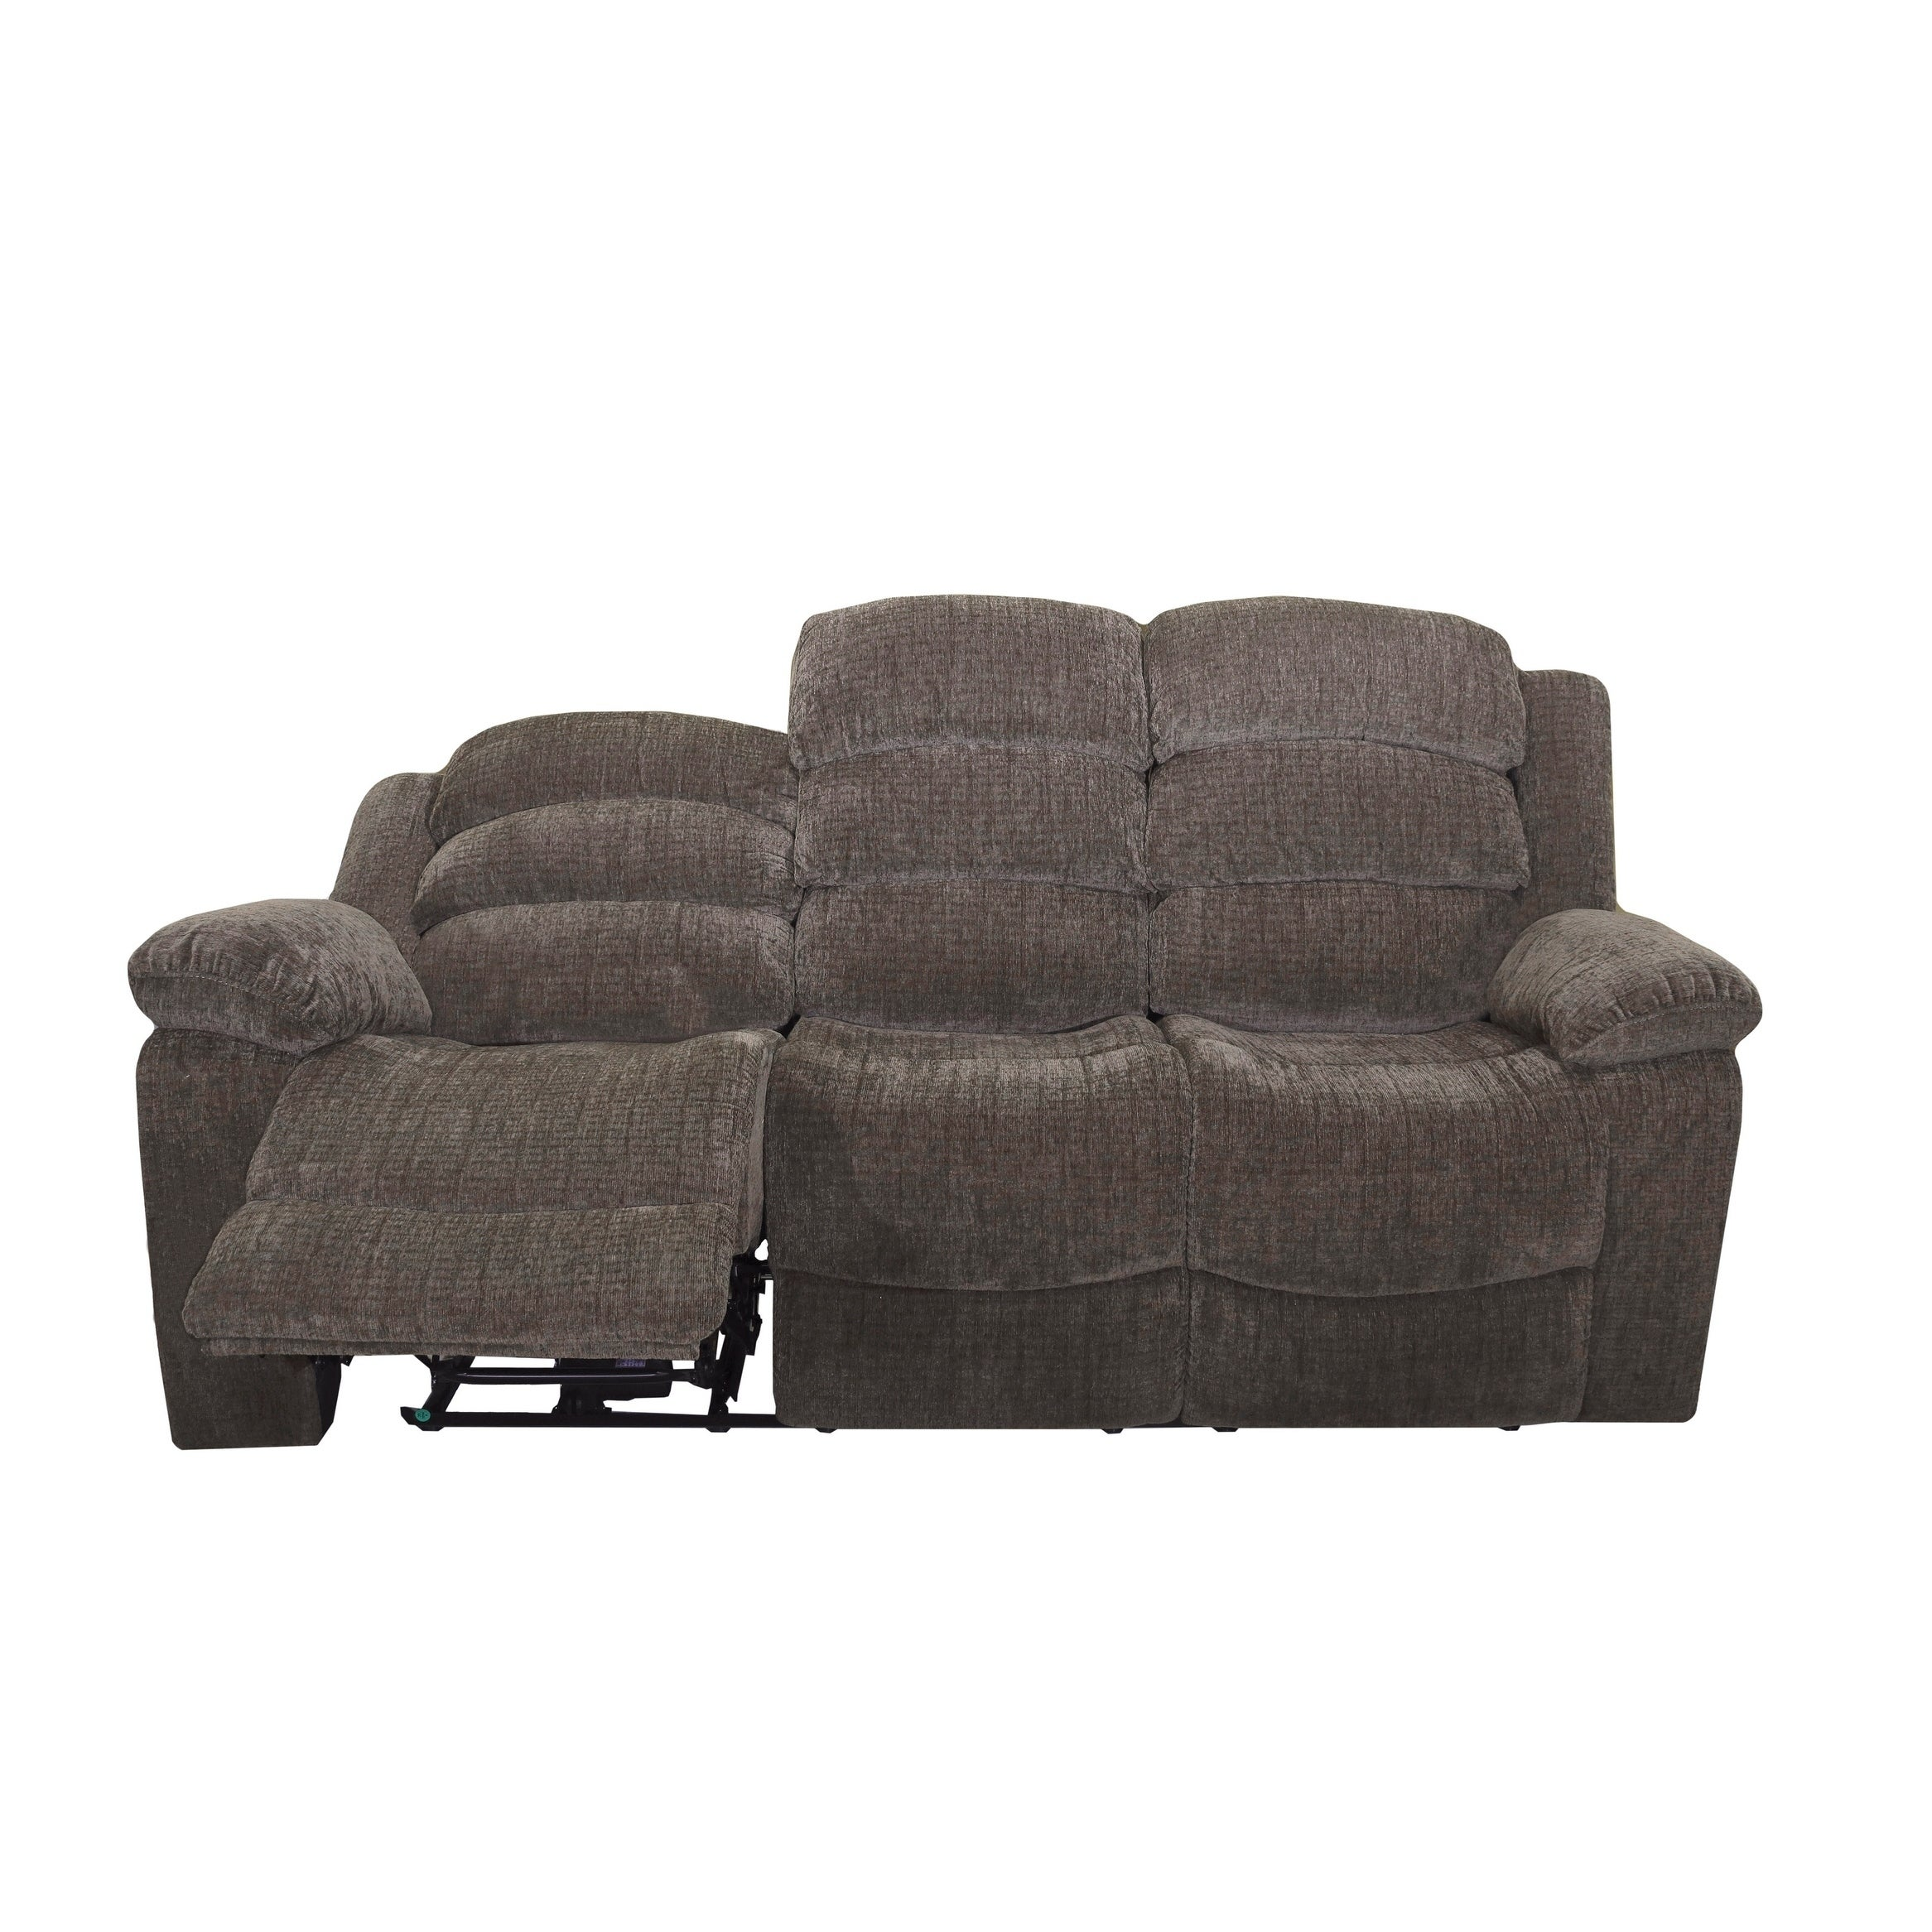 Austin Stone Dual Recliner Sofa Free Shipping Today 20222154